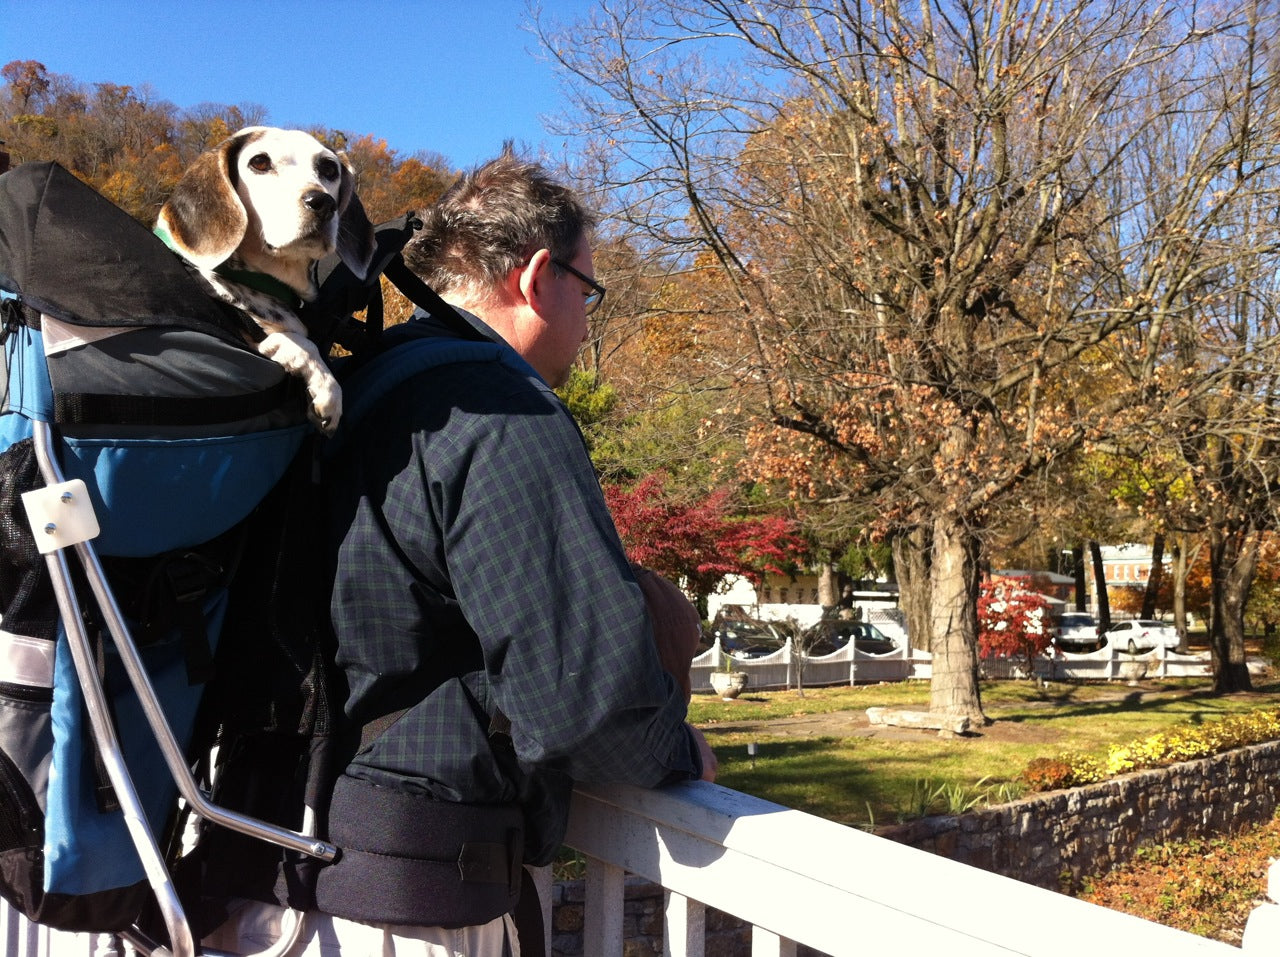 Dog carrier backpack for large dog